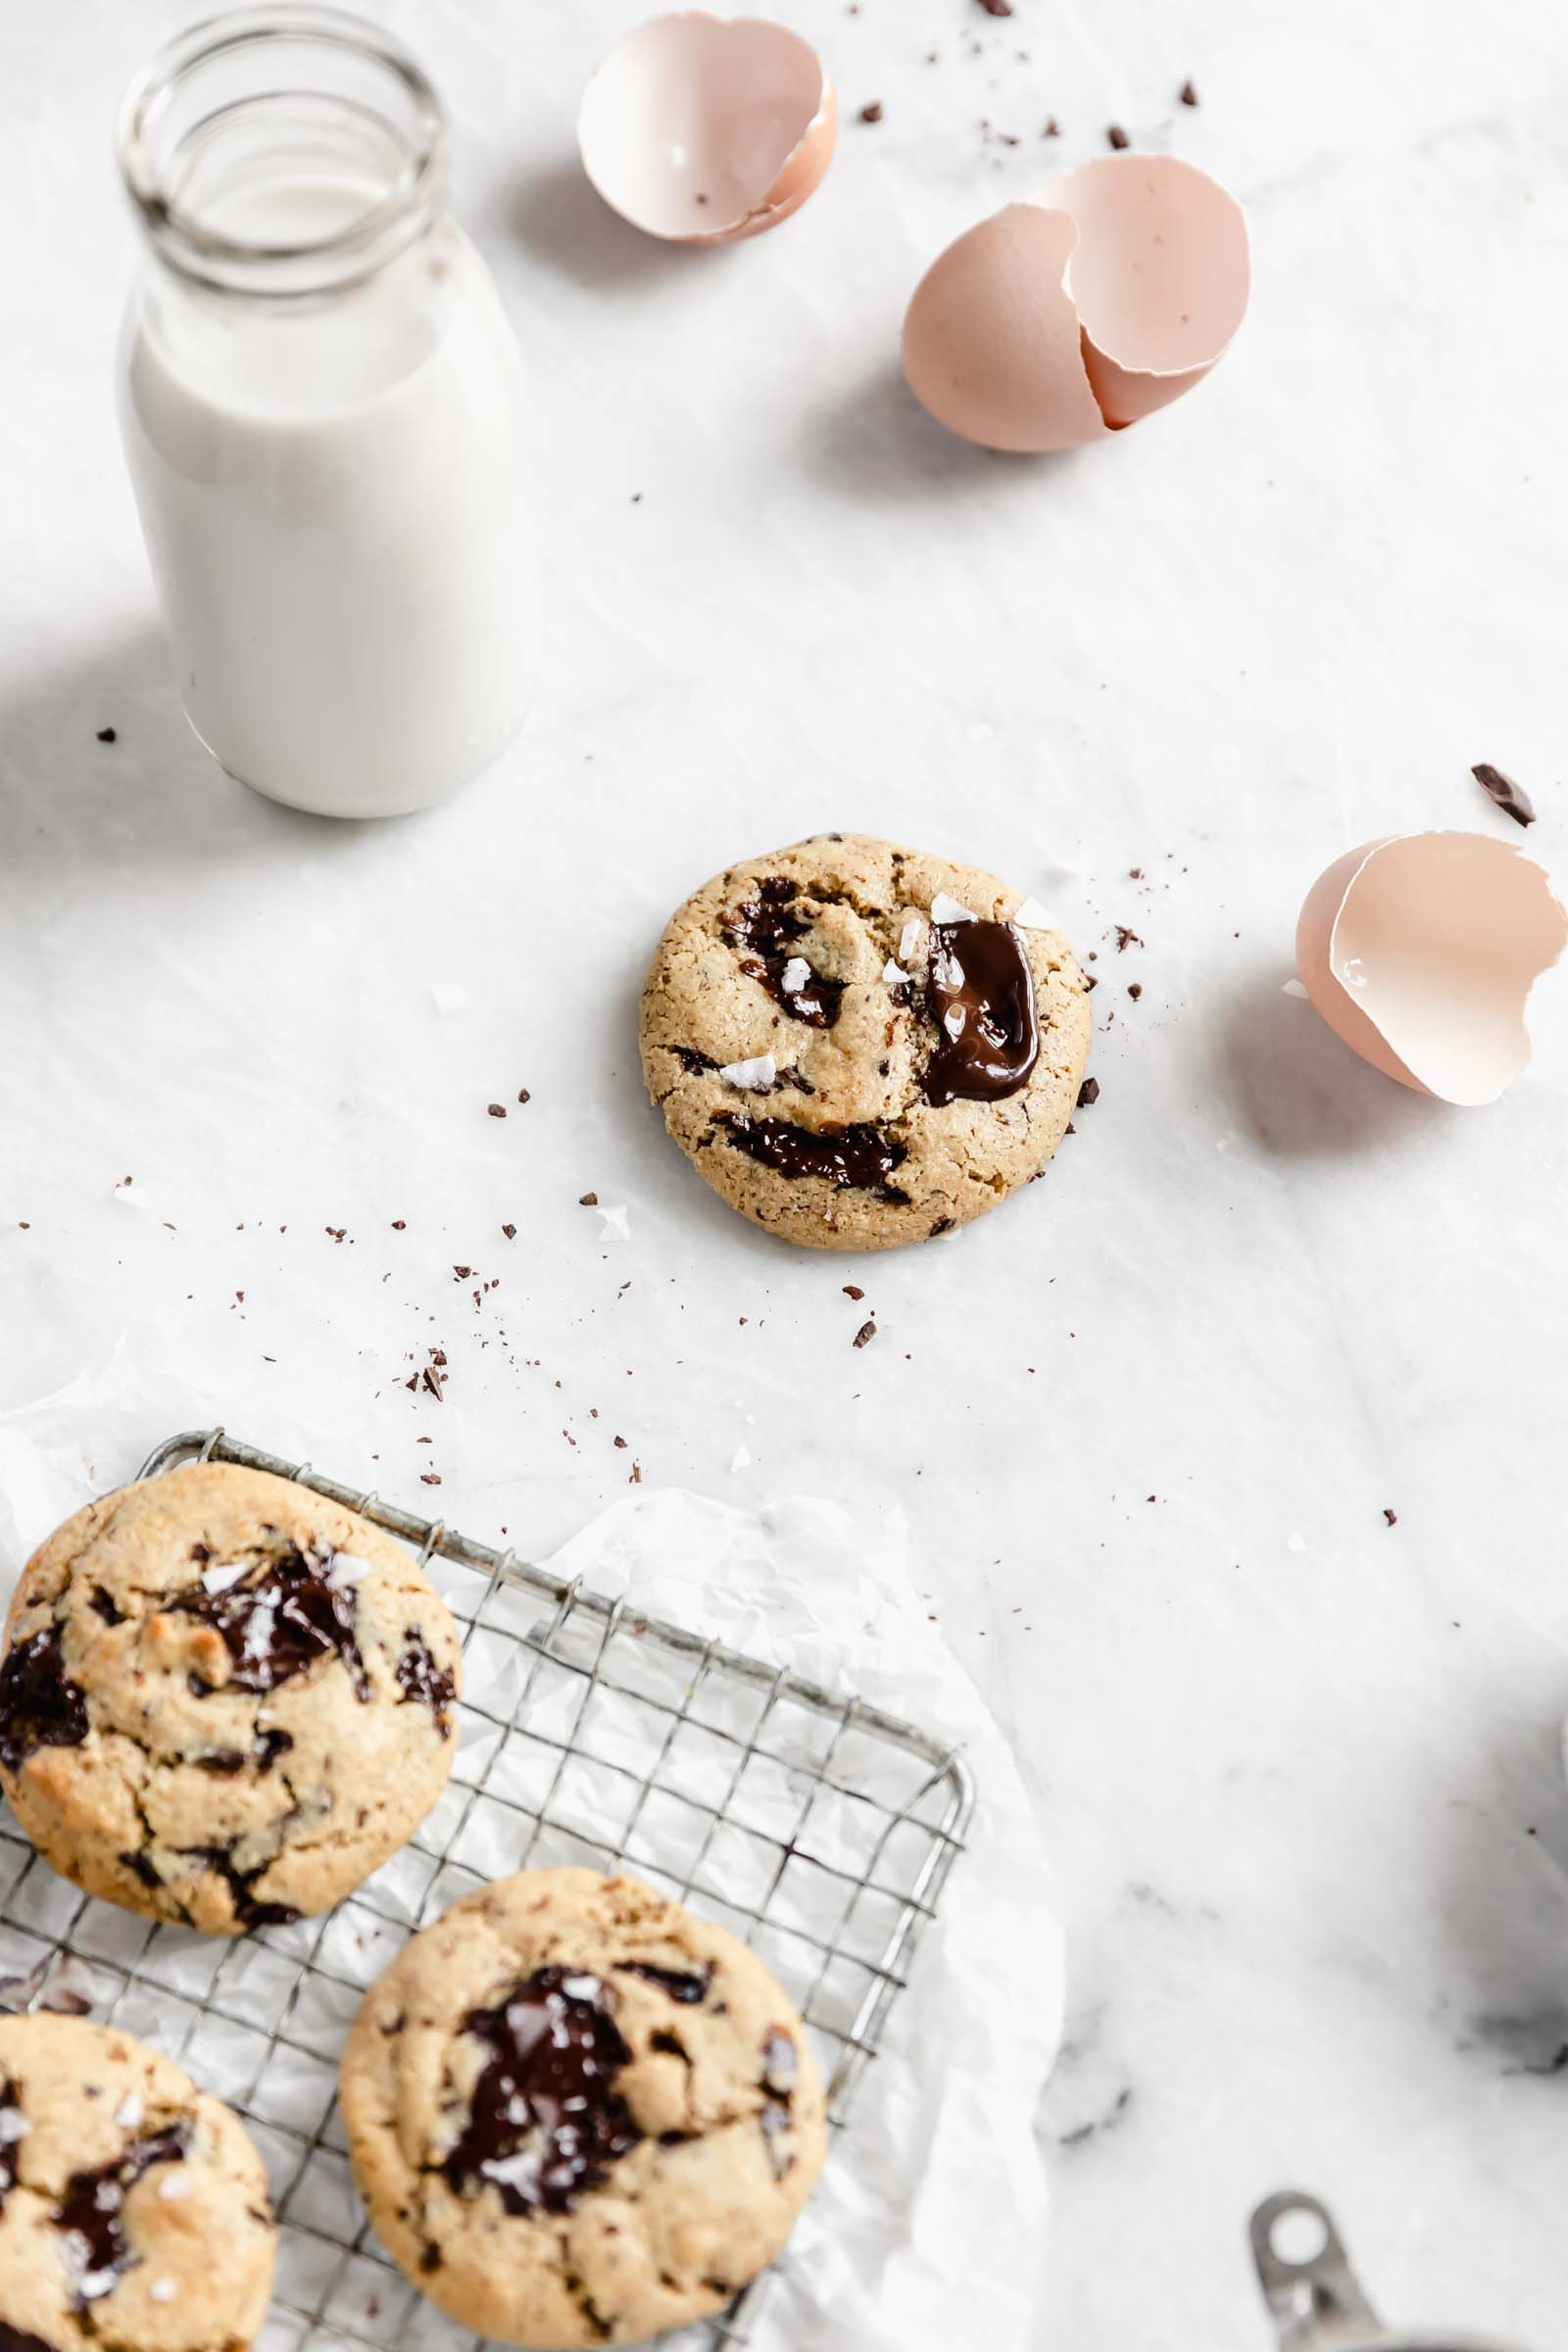 chocolate chip cookie with egg shells, milk and more cookies